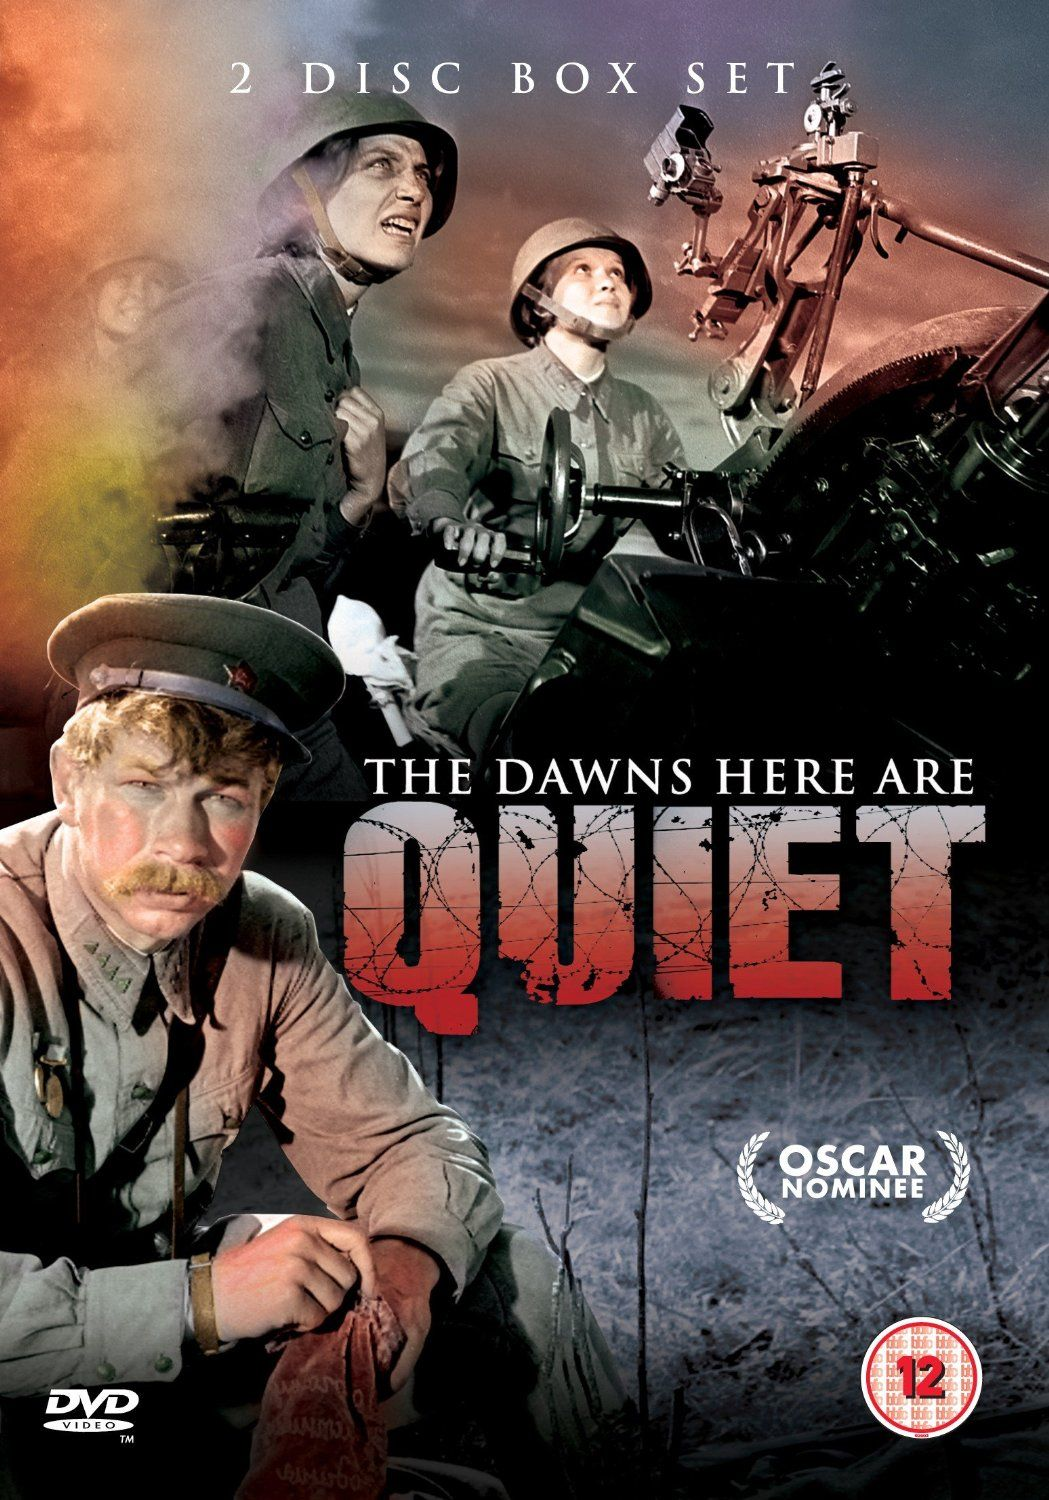 The Dawns Here Are Quiet (1972) The war through different